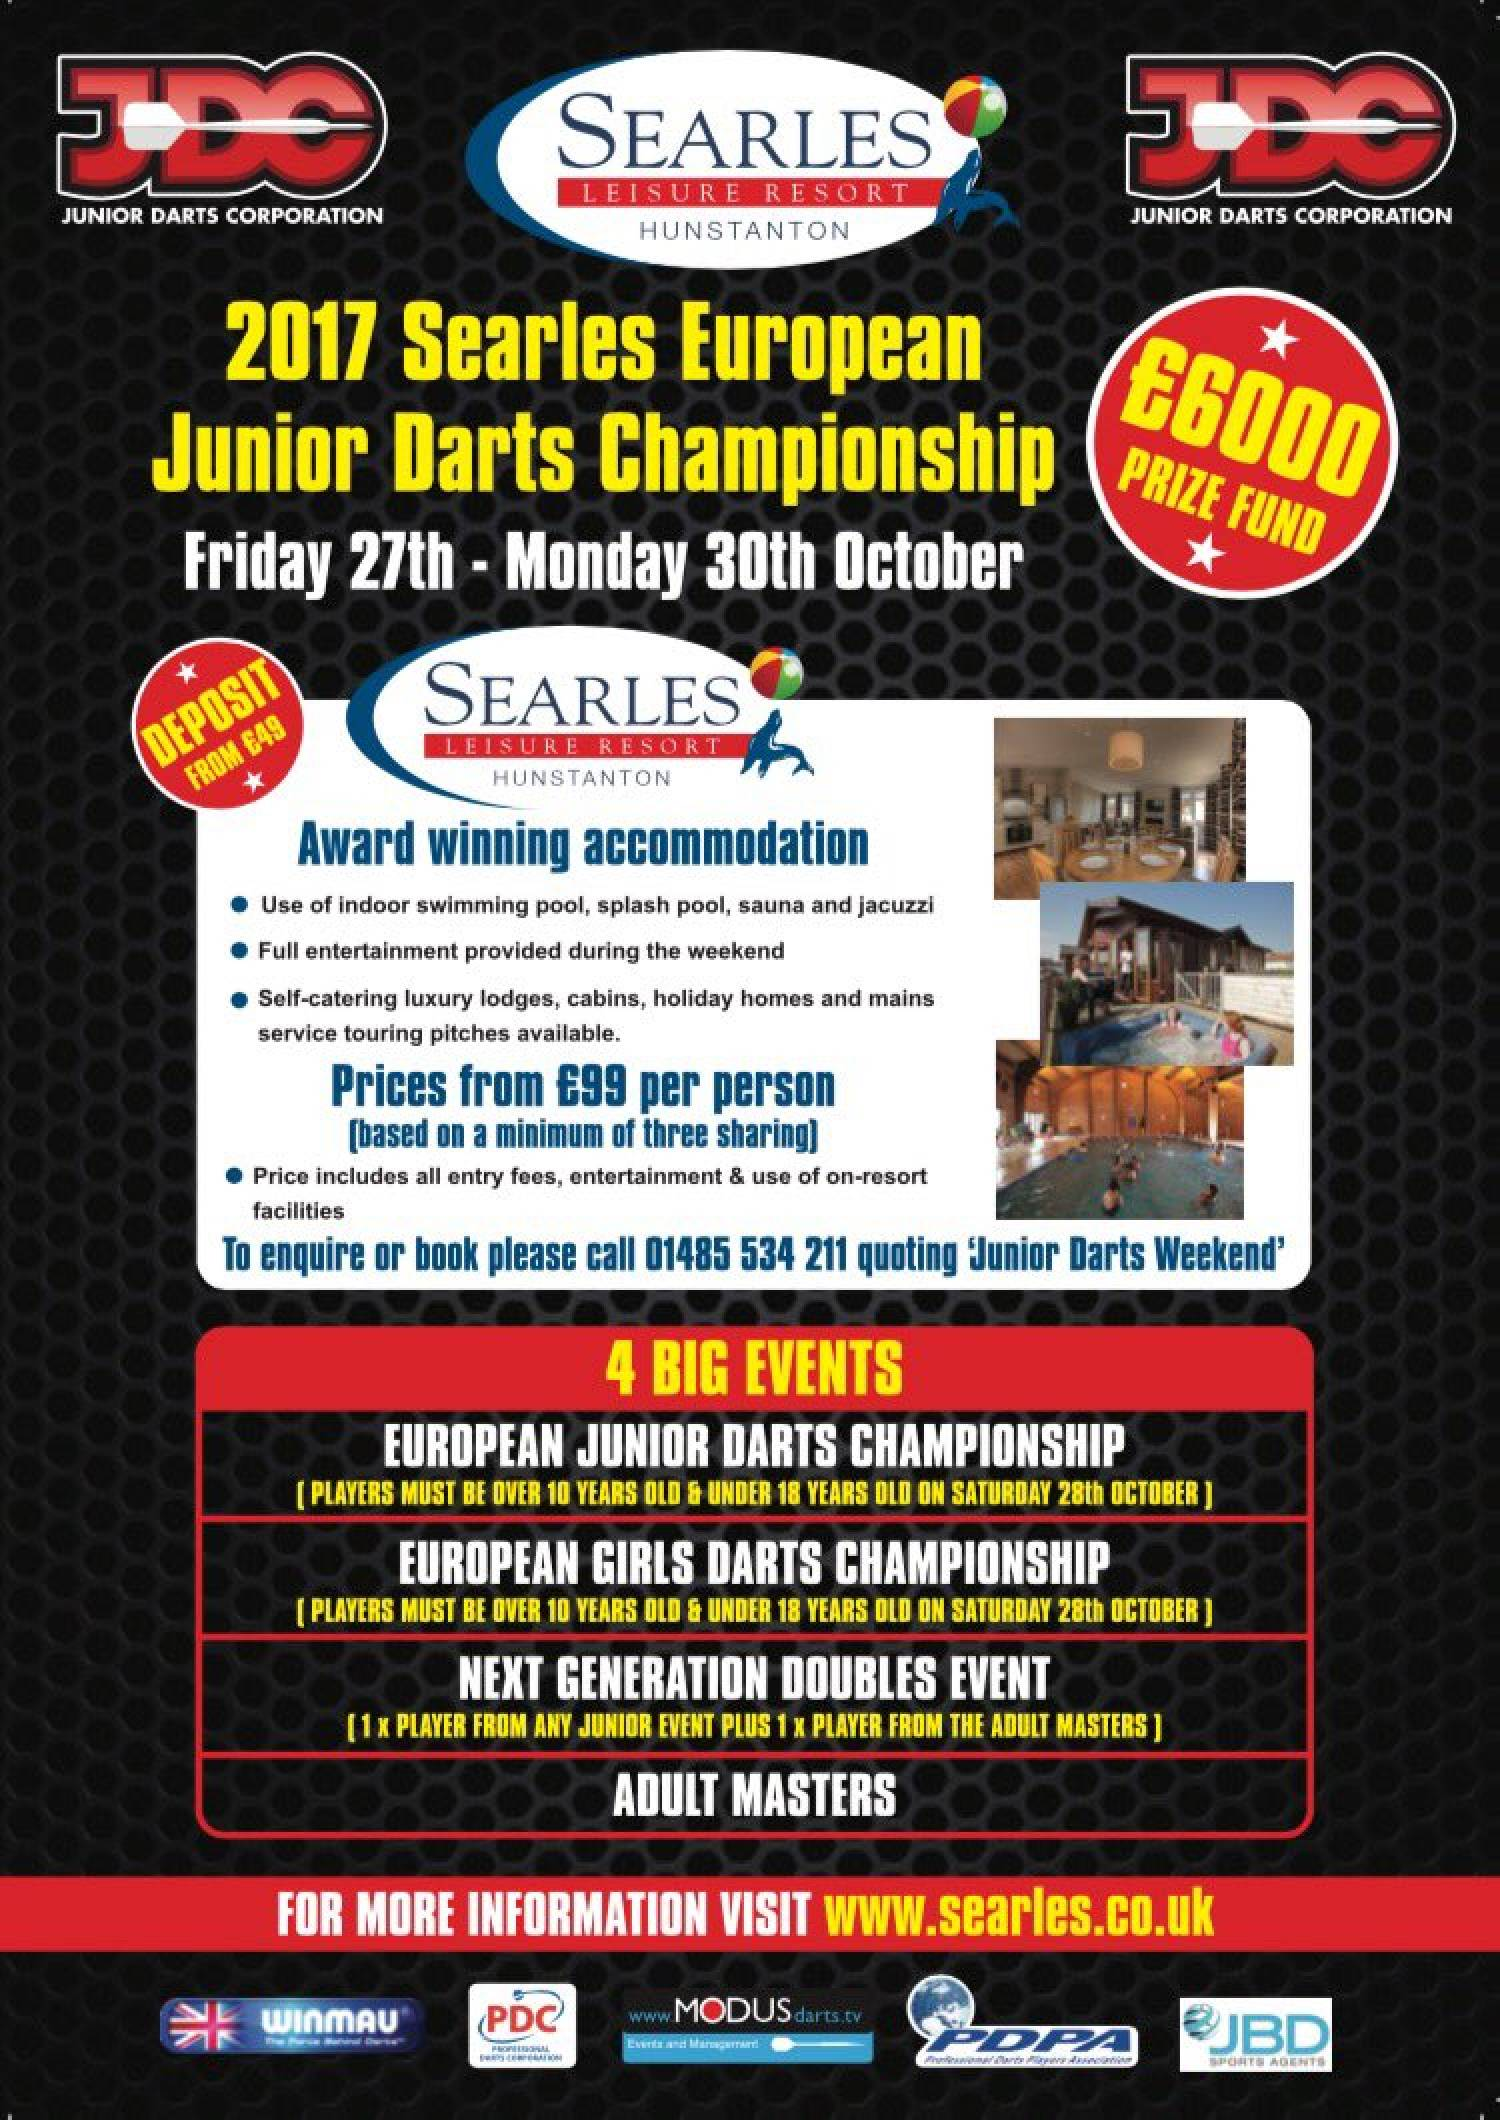 2017 Searles European Junior Darts Championship